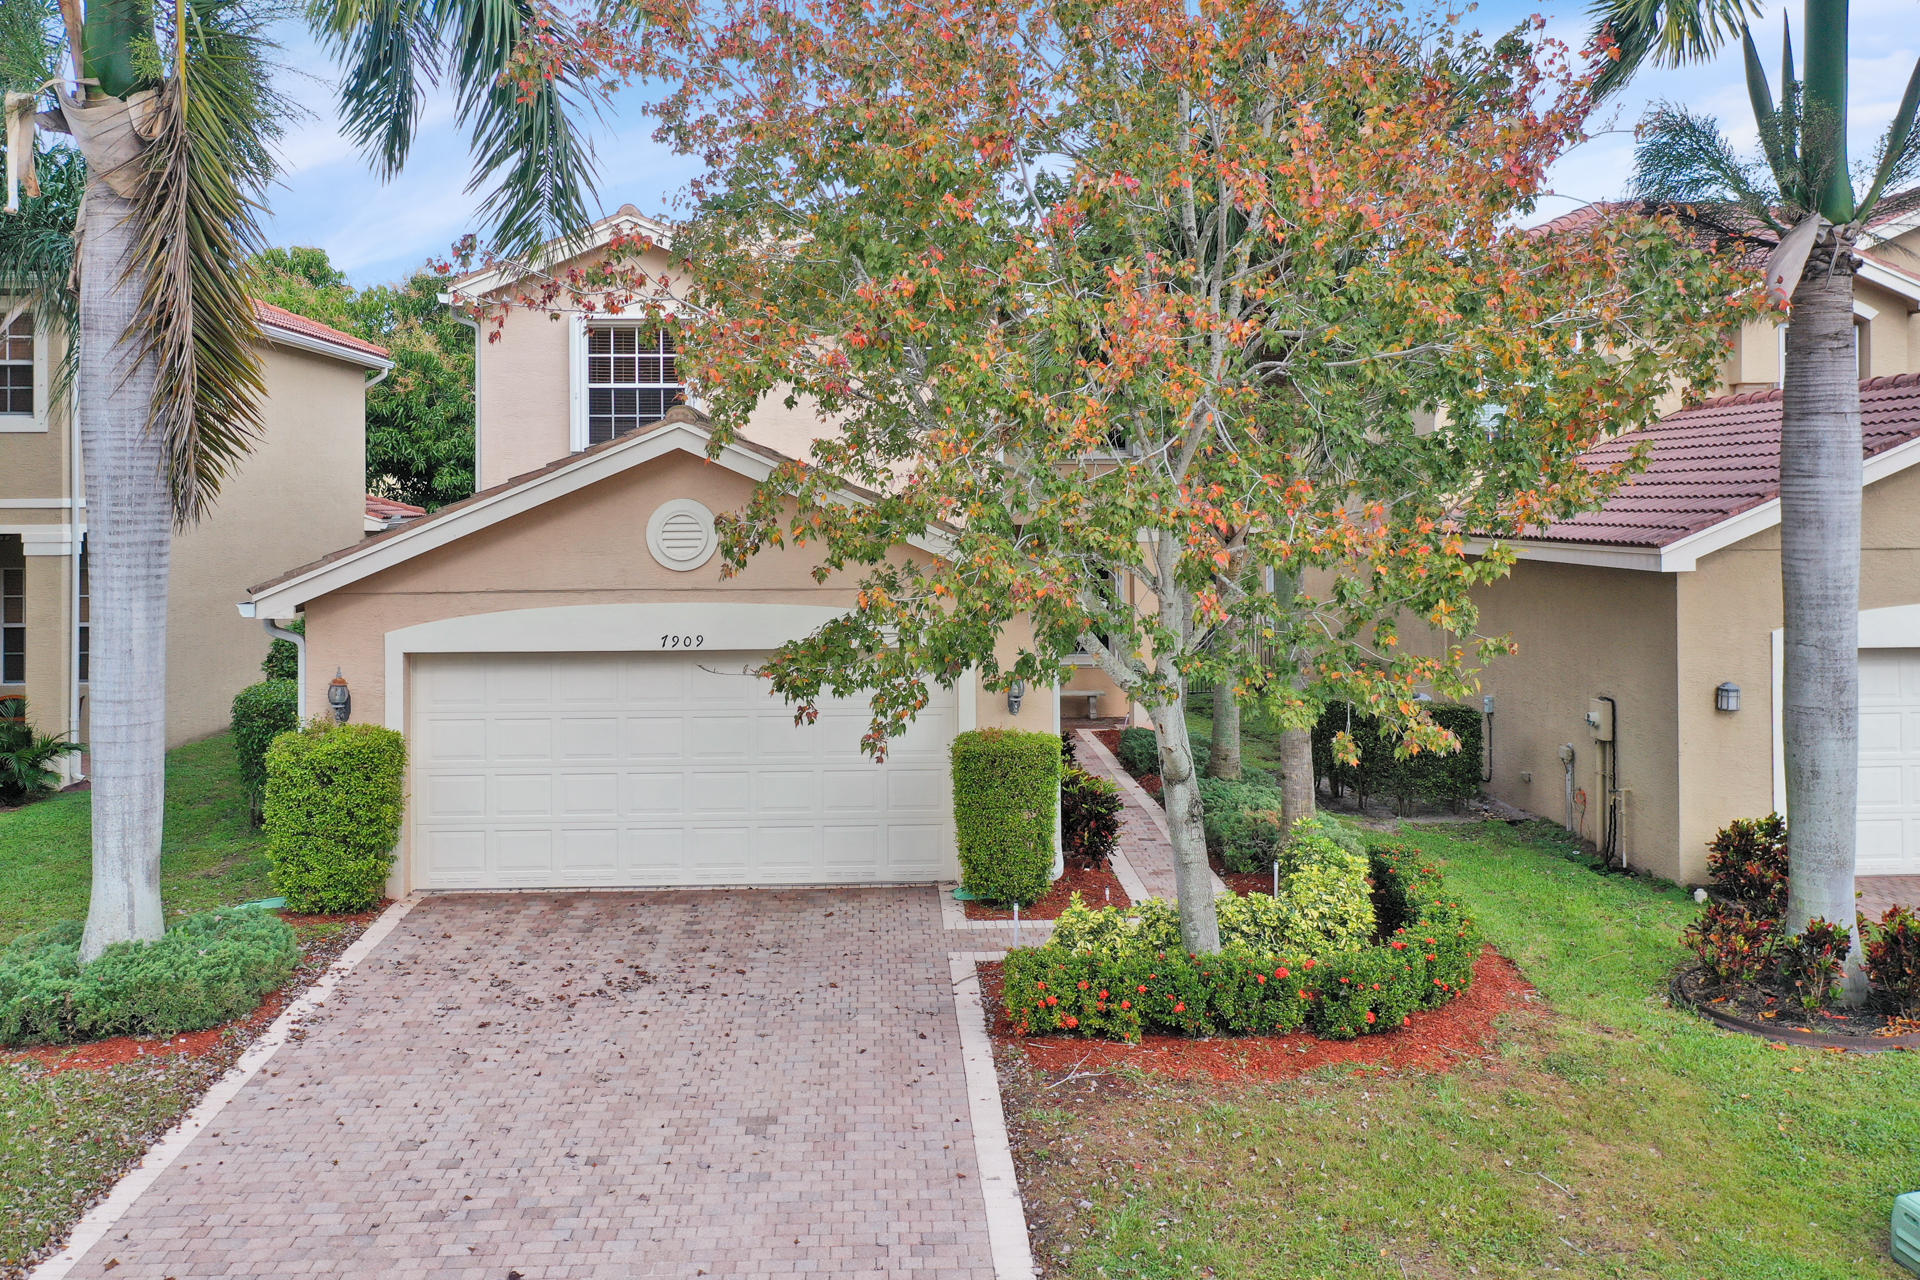 You don't want to miss out on this gorgeous, lakefront home in Boynton Beach! This modern 4 bedroom, 3 bathroom house is filled with new upgrades & is move-in ready. The layout of the home is perfect for entertaining with one bathroom and bedroom on the first floor, and 3 bedrooms and 2 more bathrooms upstairs. It's light-filled and cozy common area is guaranteed to make you feel right at home. Located in a beautiful & safe gated community, the amenities include a clubhouse, gym, pool, tennis court, soccer field, sand volleyball, basketball court and tot lot park.